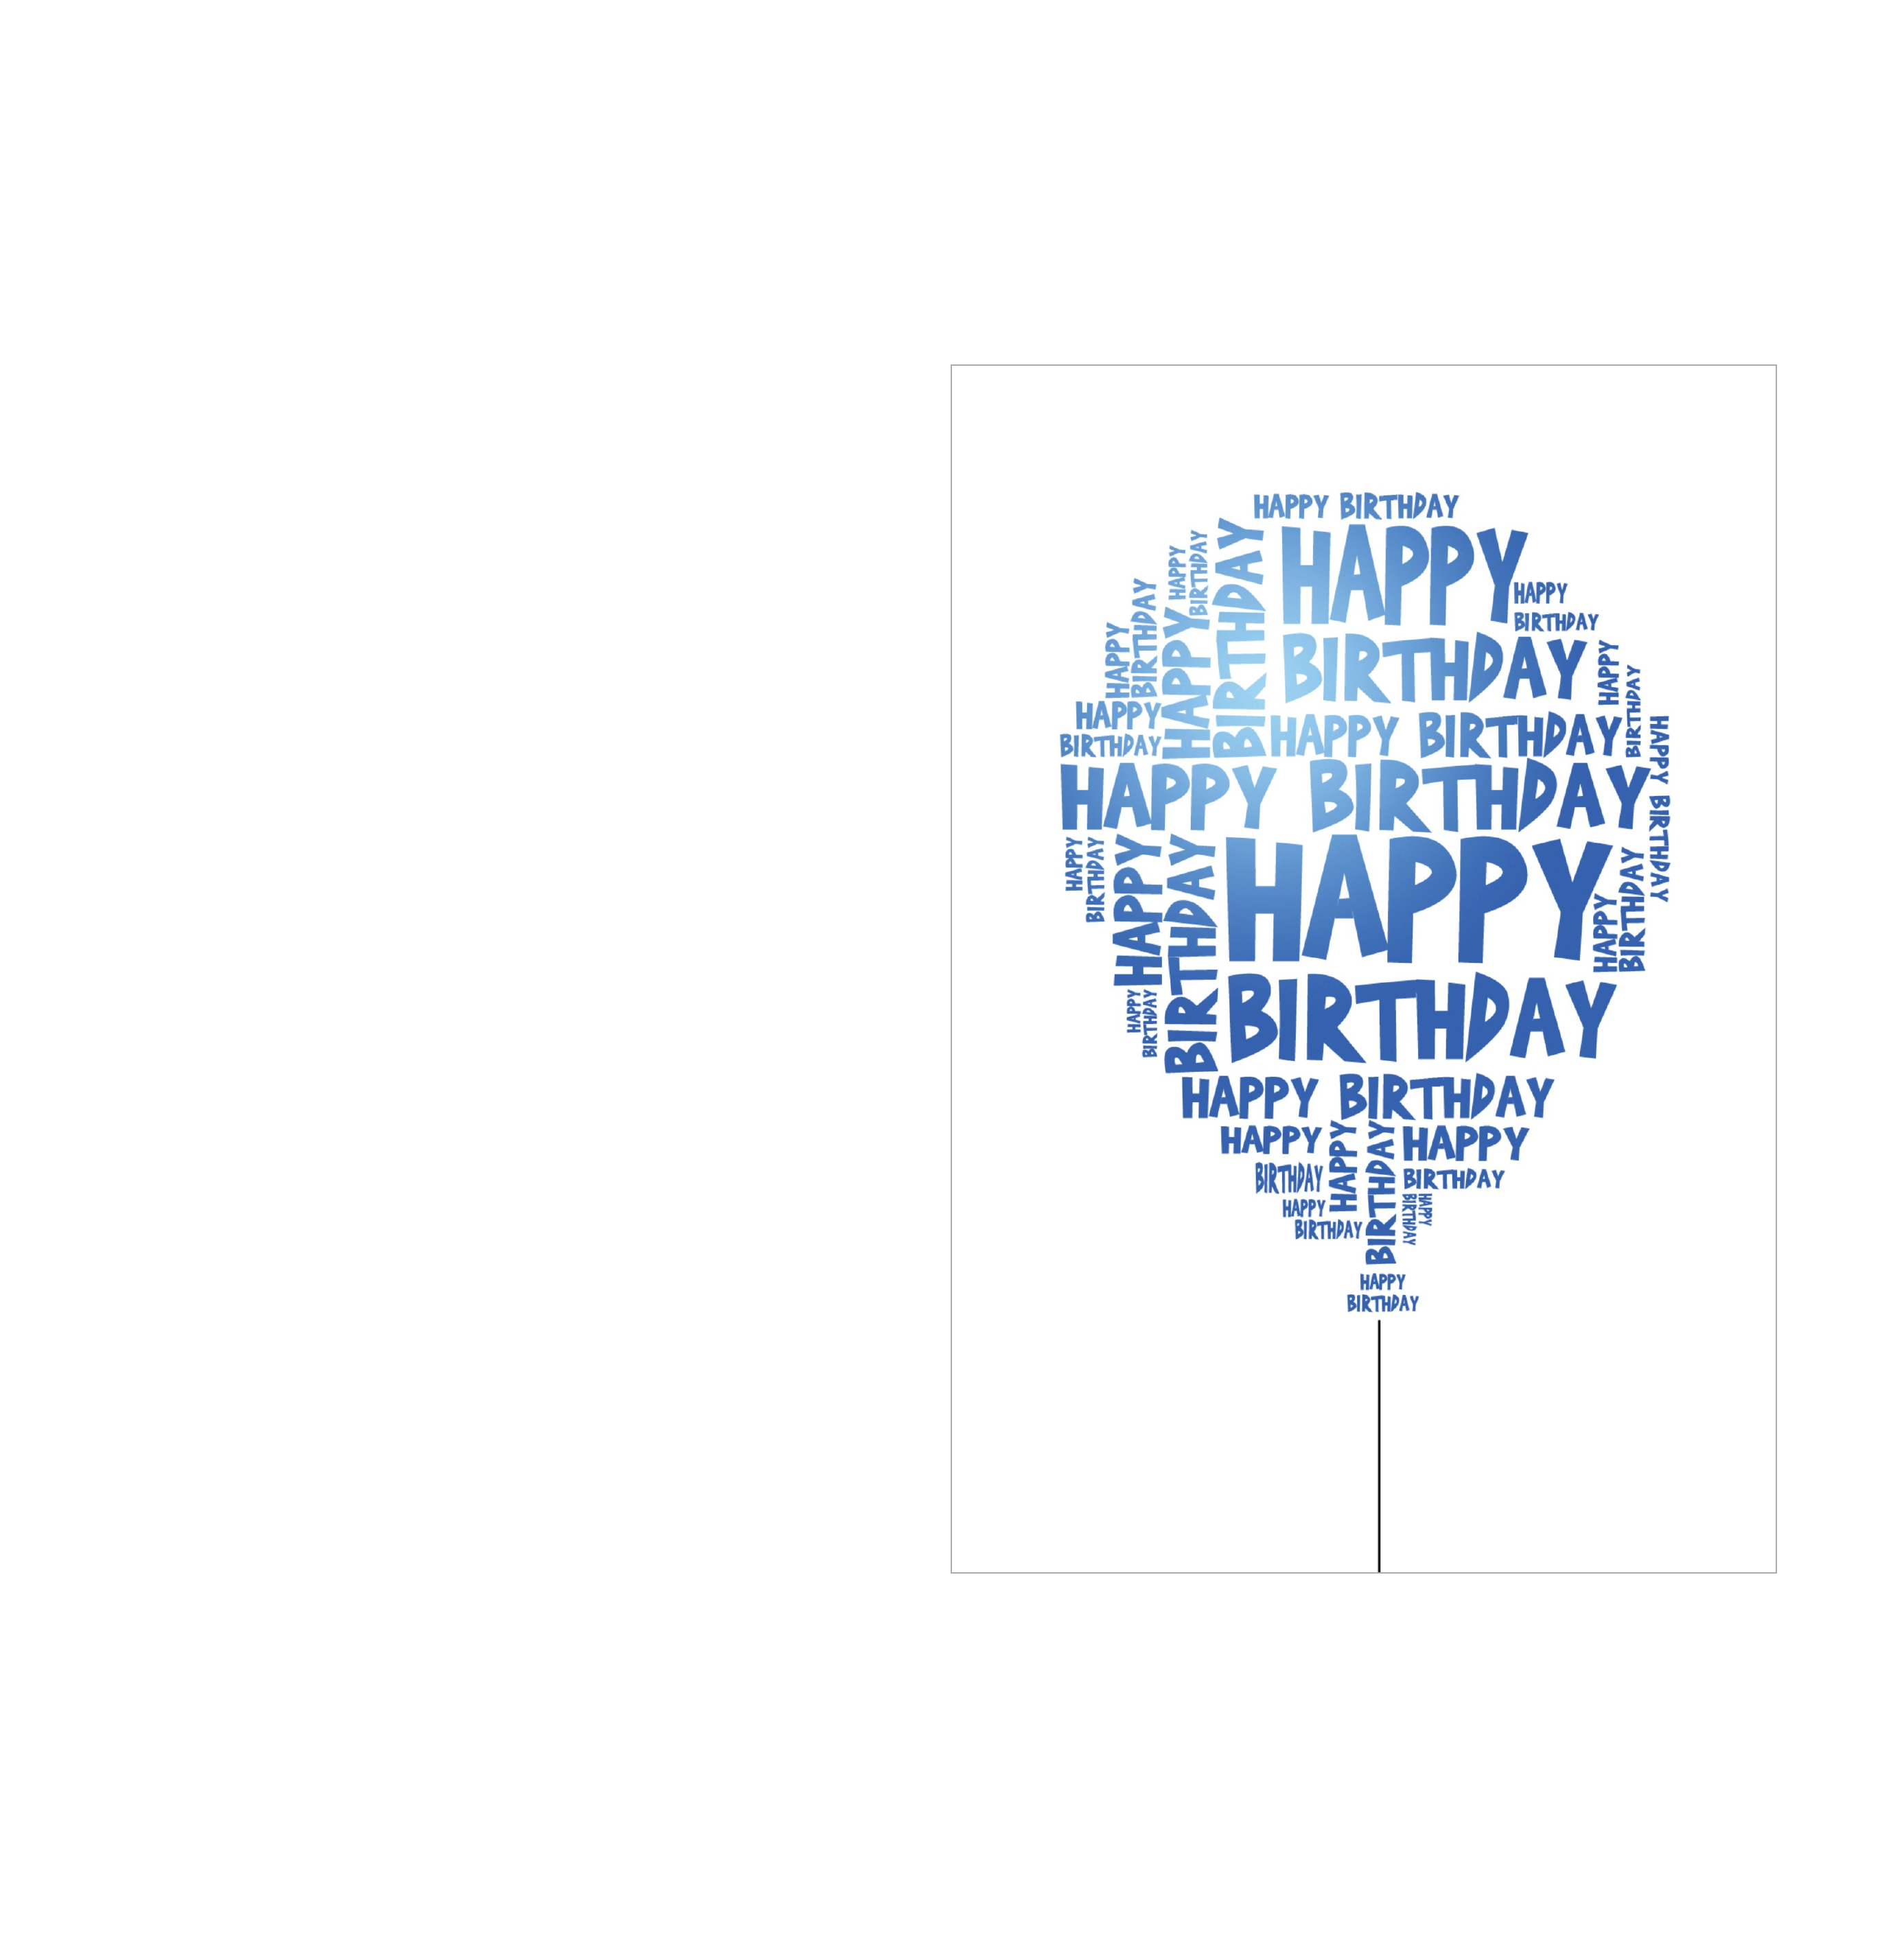 Birthday Card Template with Happy Birthday Balloon Free Download